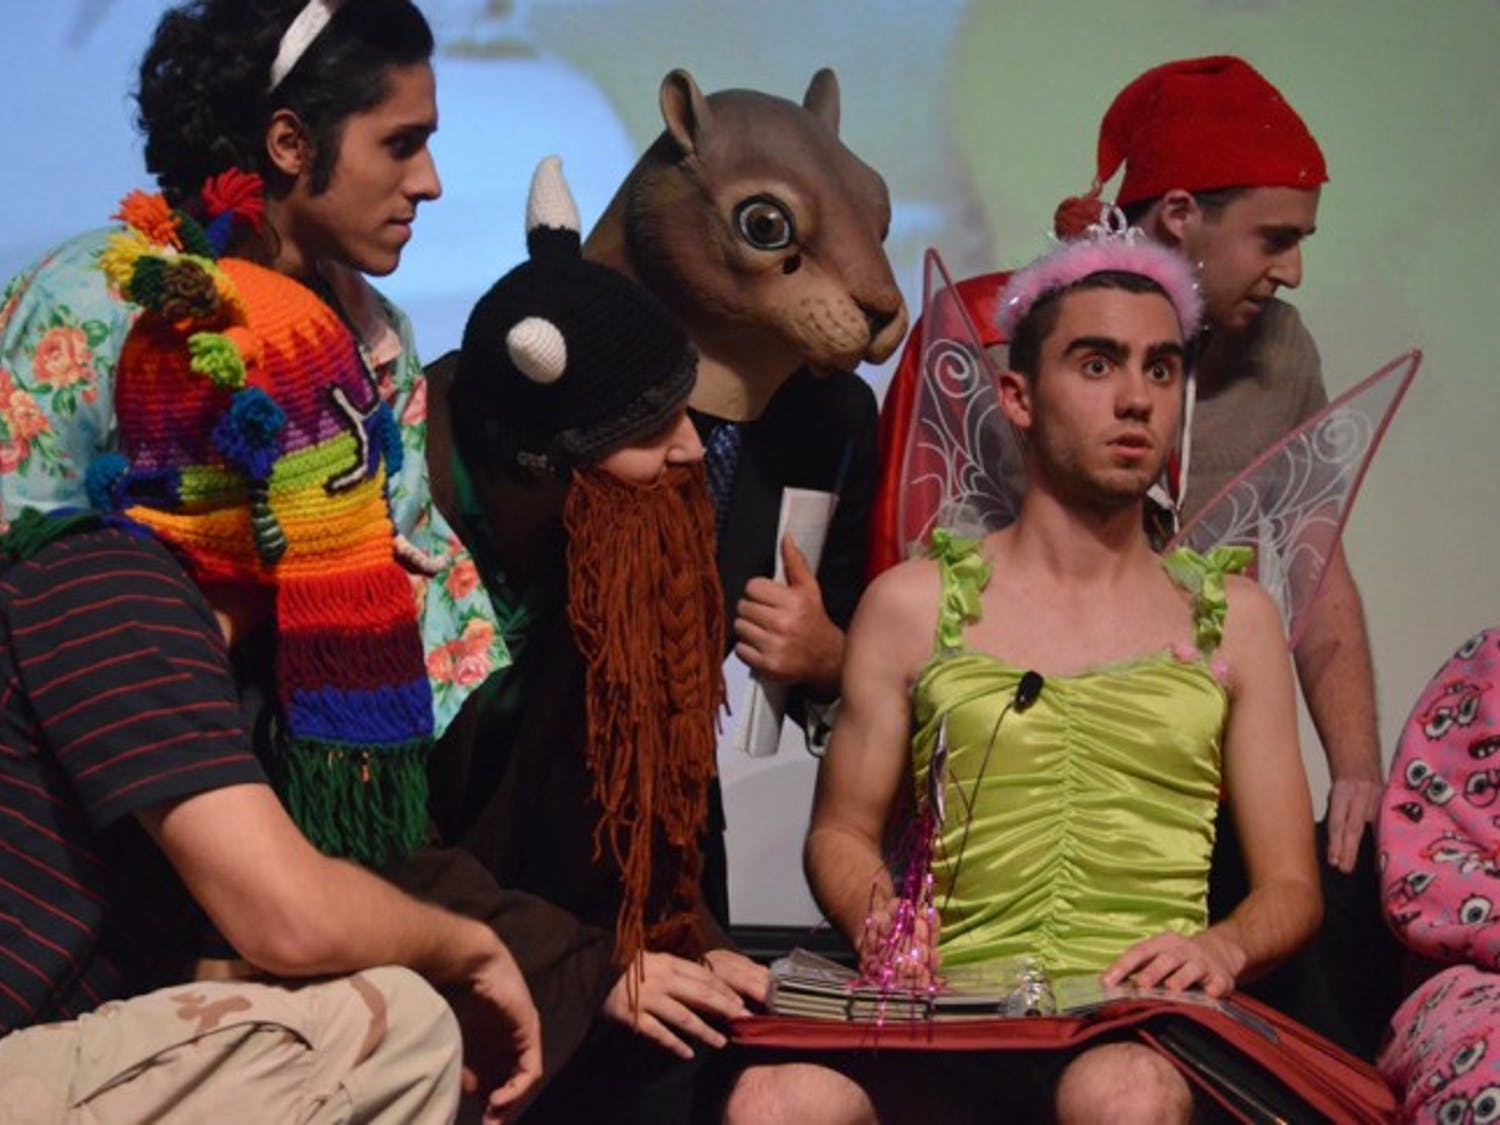 Tyler Chatam, a 19-year-old telecommunication freshman, acts as a sleep fairy in the Sandman sketch during Theatre Strike Force's sketch comedy show aMOCKalypse in the Rion Ballroom on Monday night.